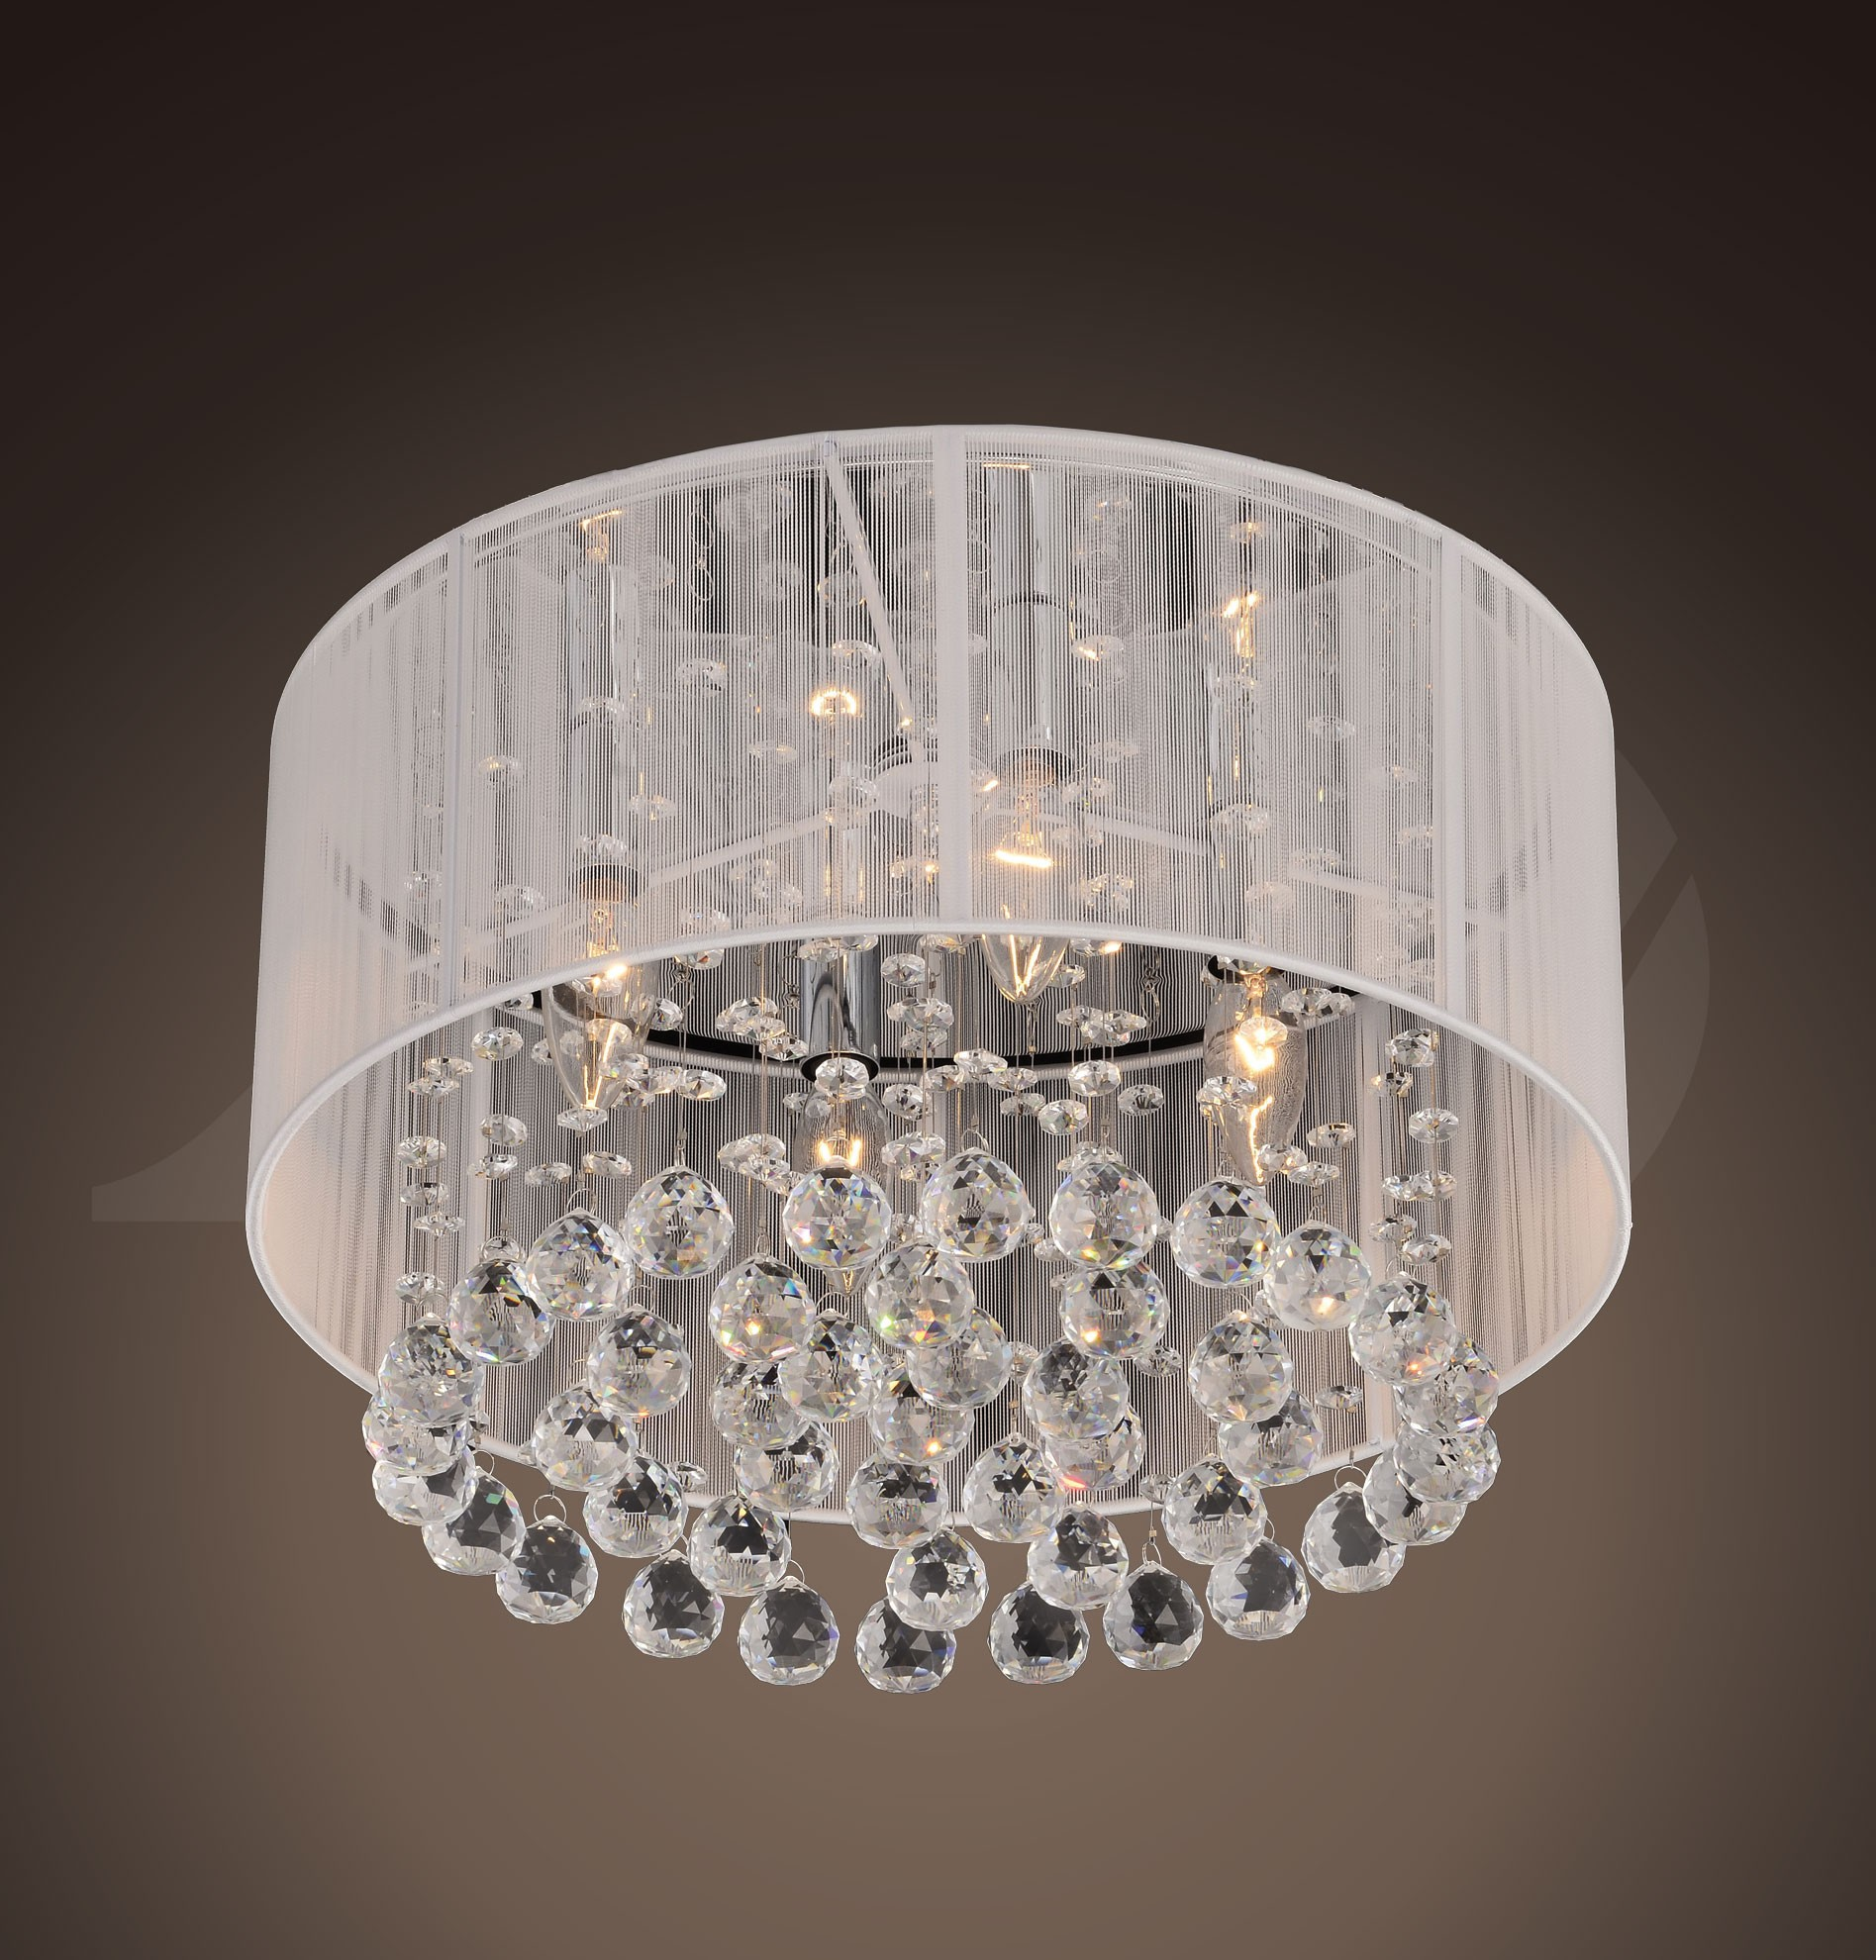 Jenna 4 Light Chrome And White Crystal Ceiling Mount Chandelier 9 H X